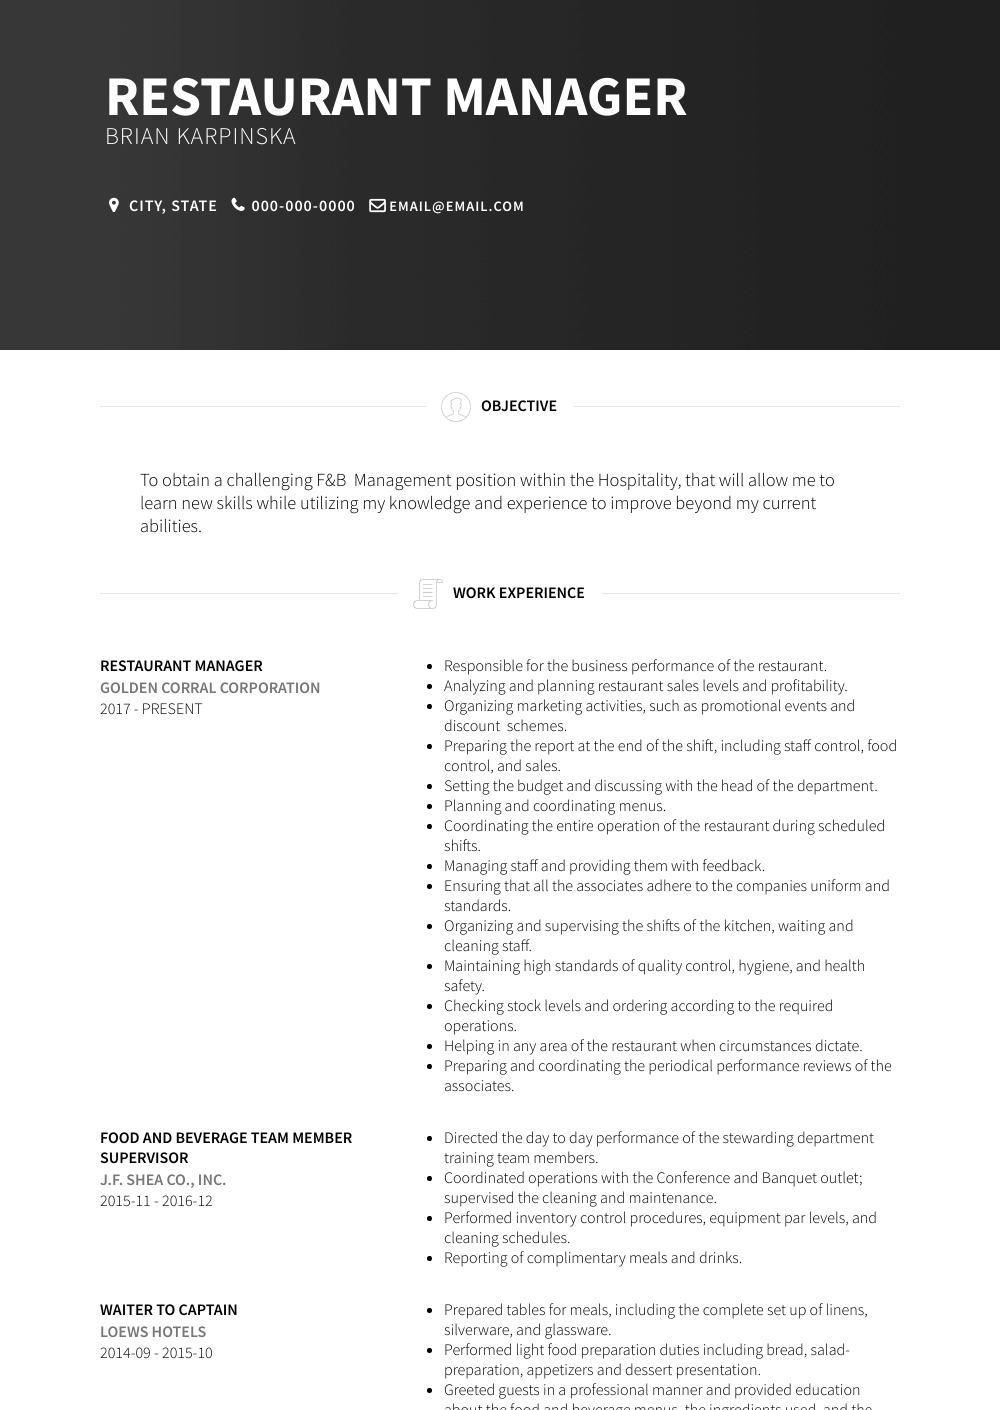 Restaurant Manager Resume Sample and Template